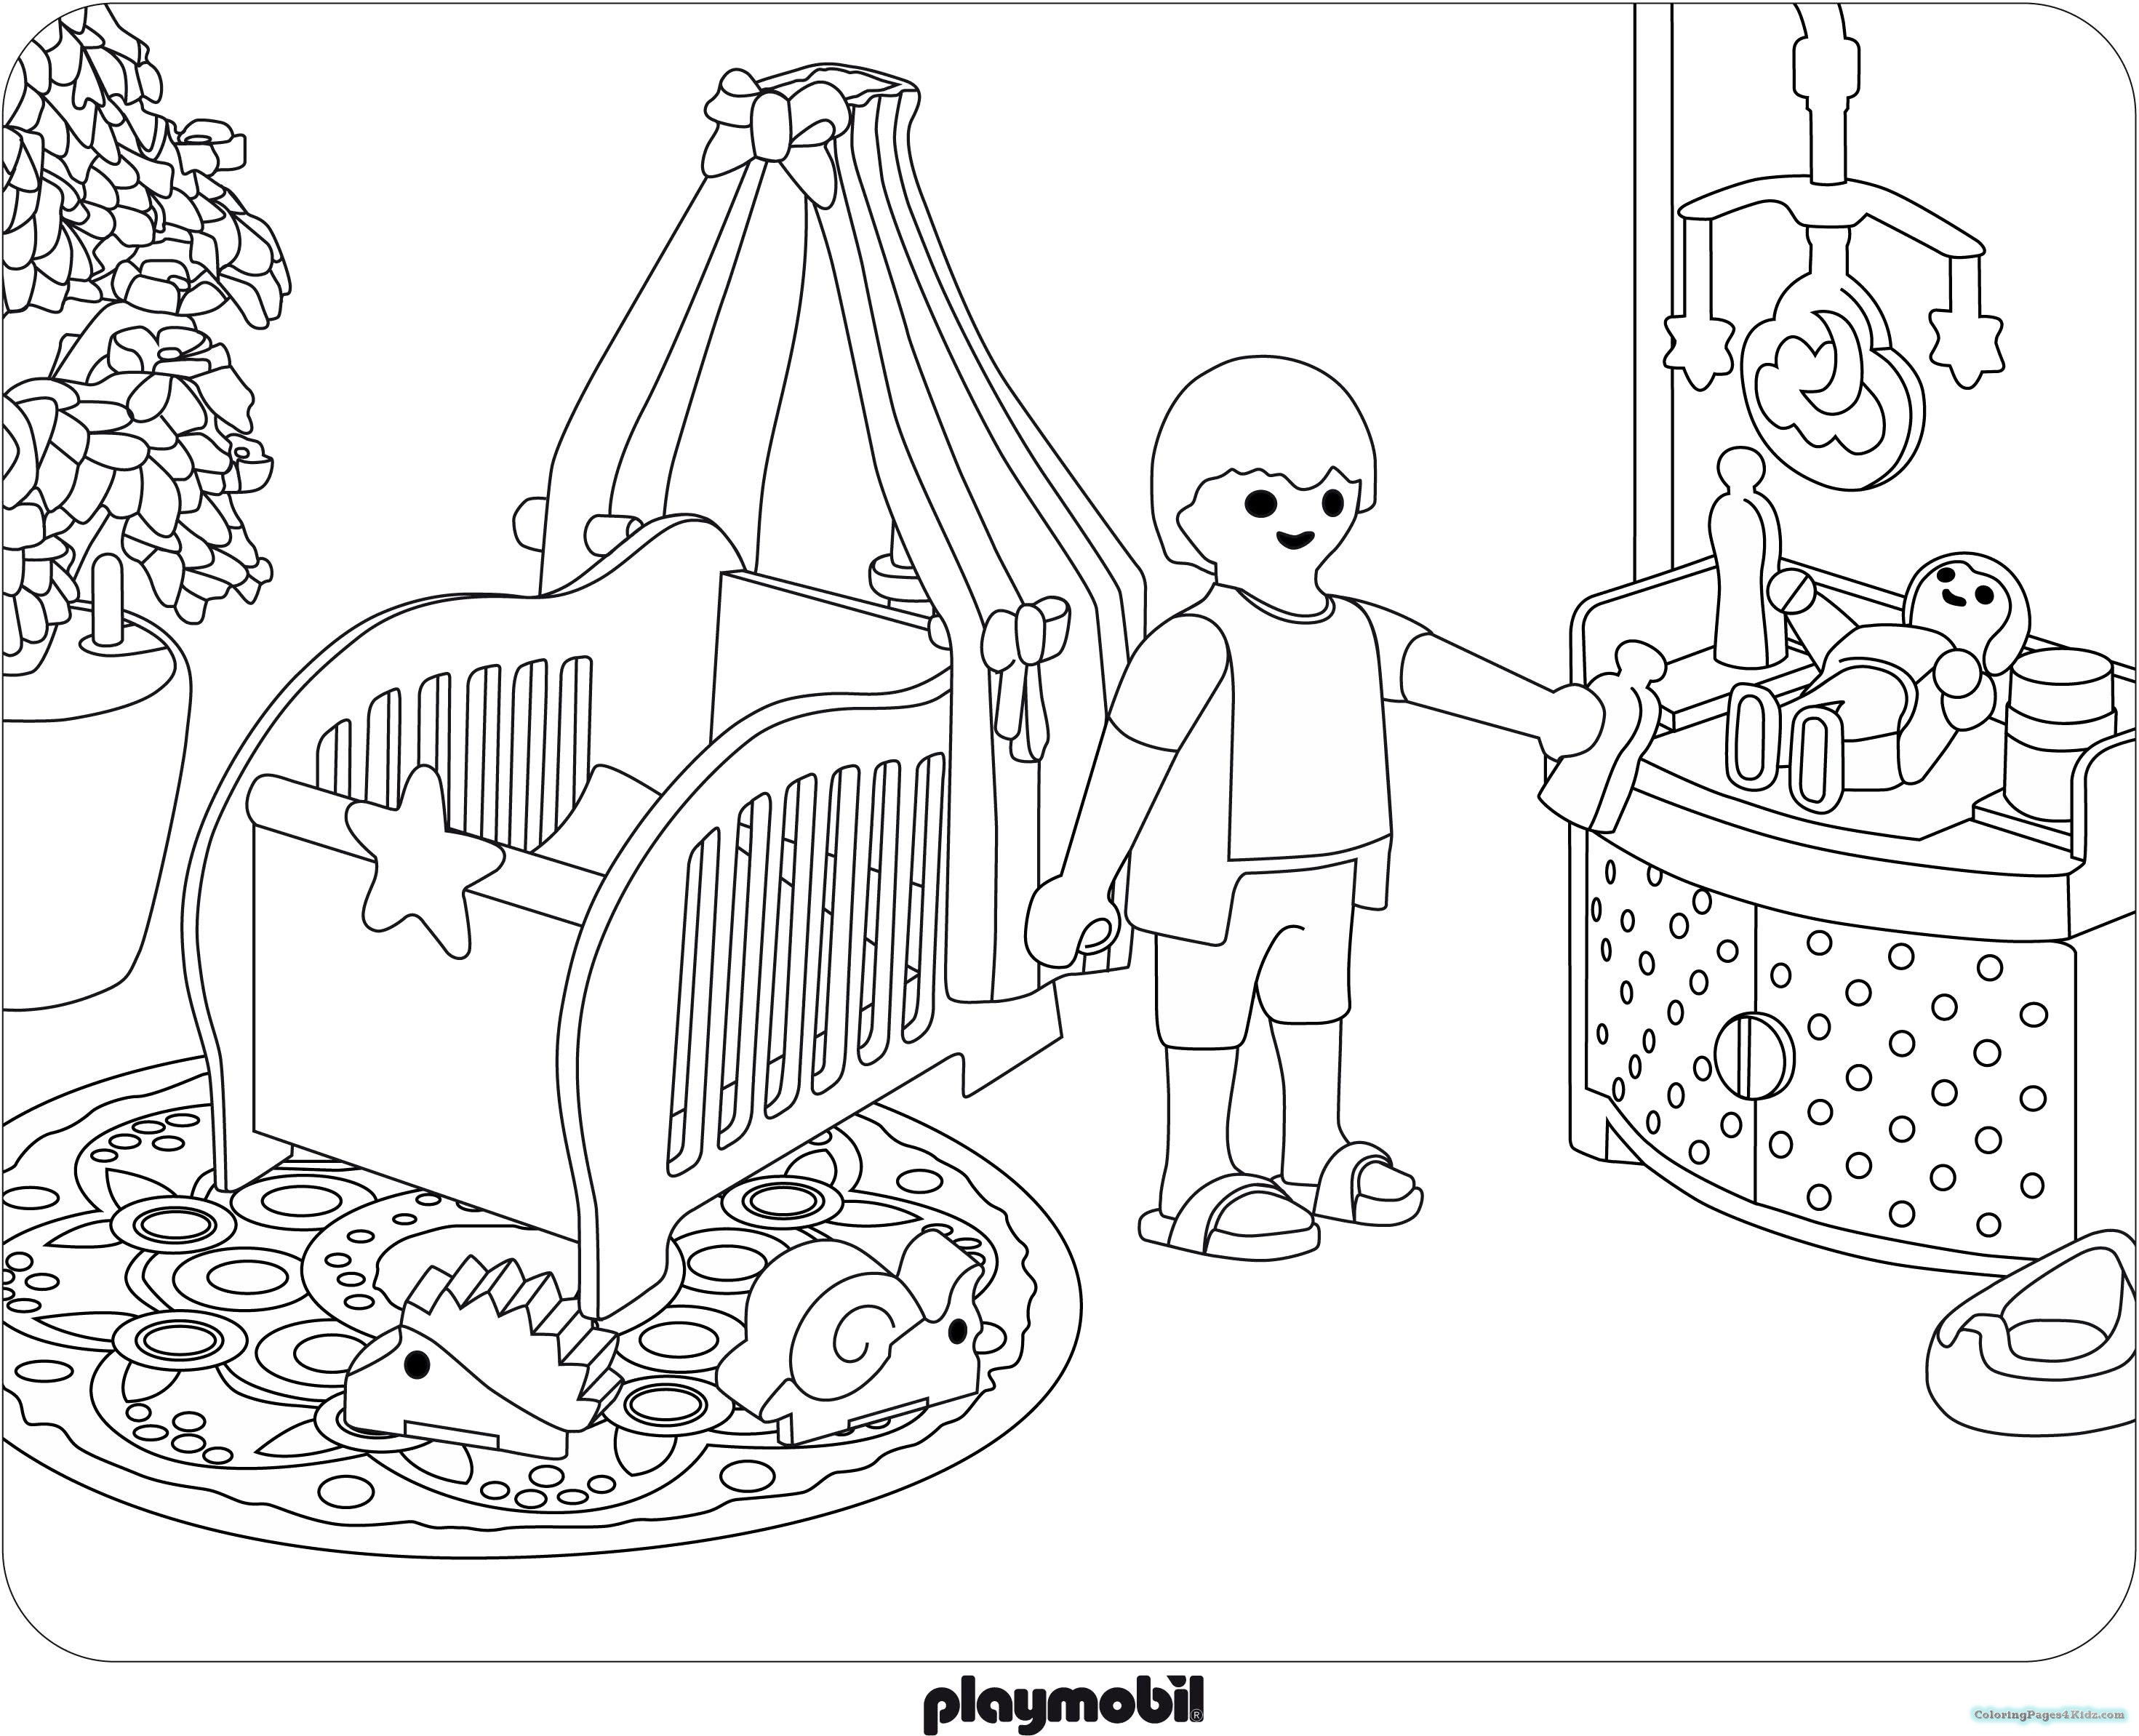 Coloring Book Page  Dragon Playmobil Coloring Pages